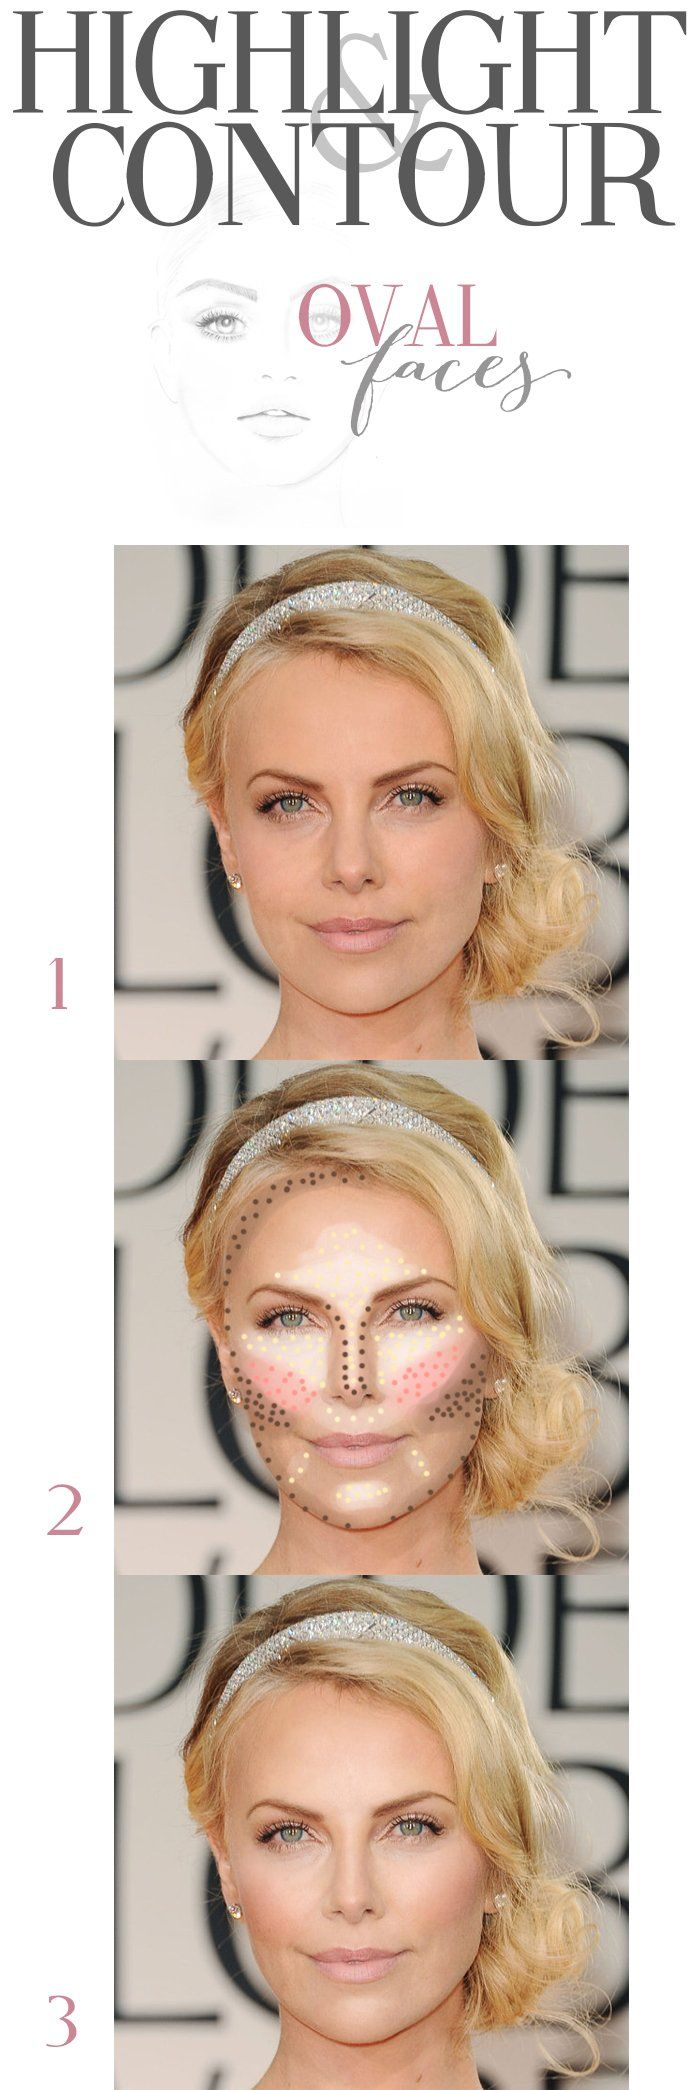 Highlighting u contouring for oval face captainmarketing